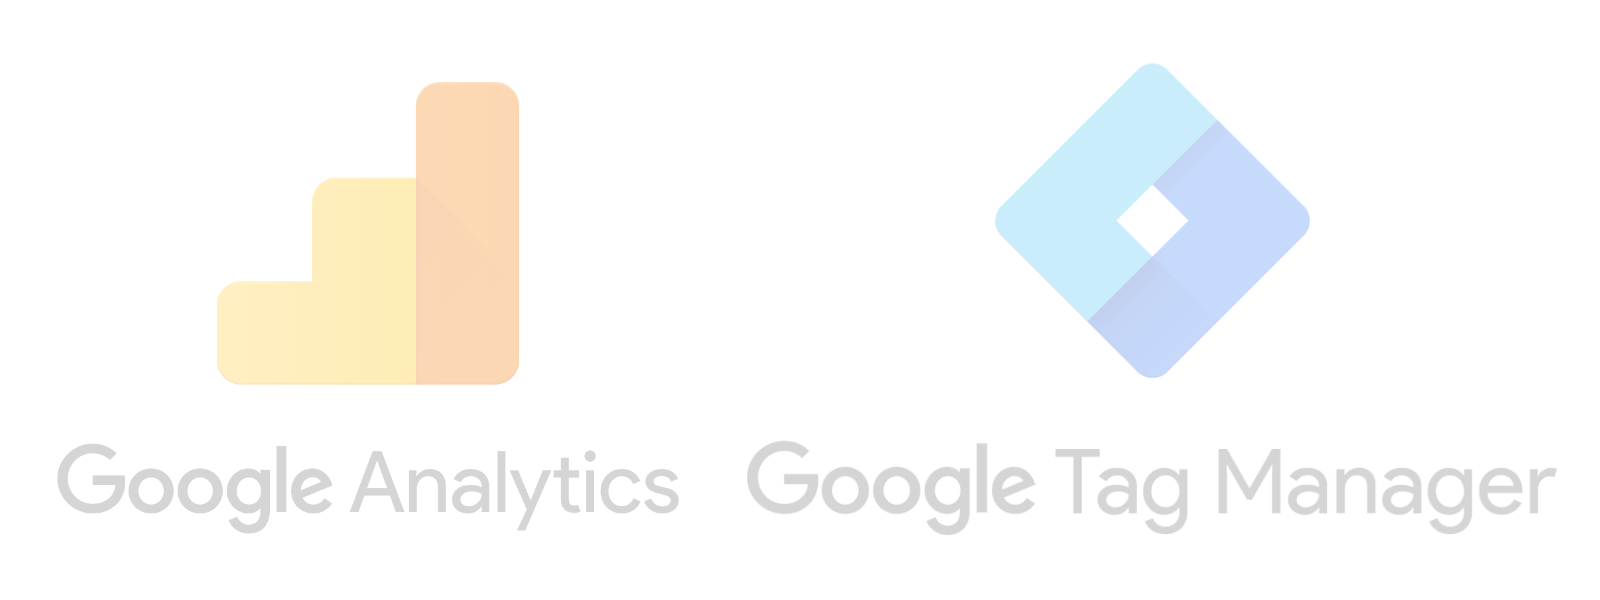 Google Analytics and Google Tag Manager logos